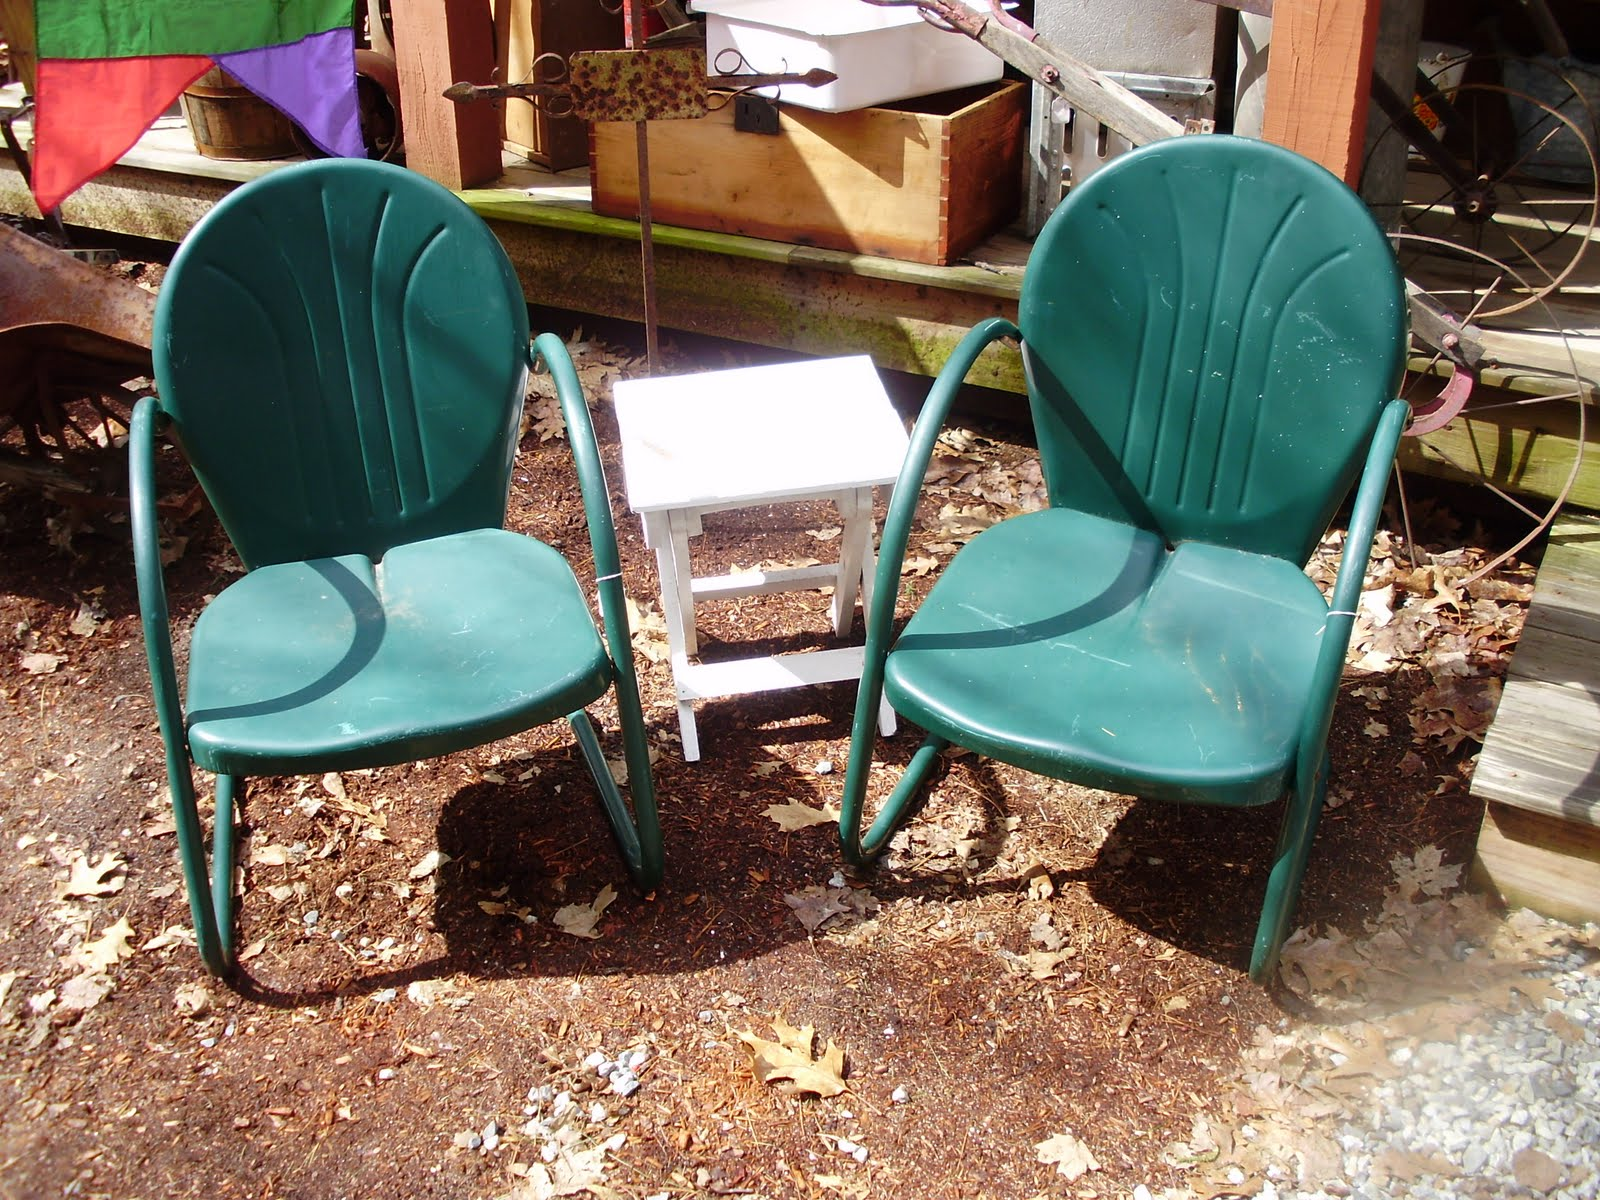 log cabin antiques gifts vintage metal lawn chairs